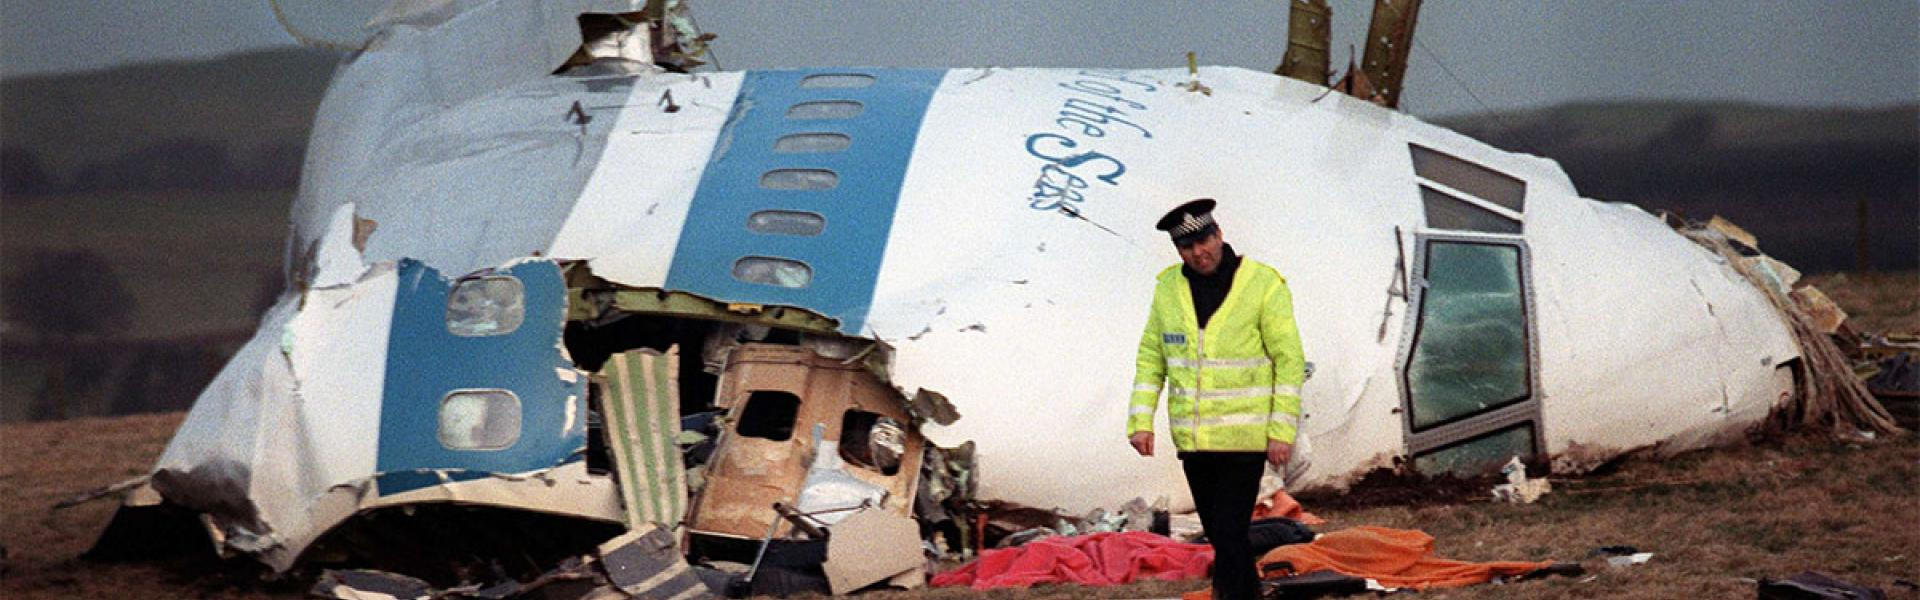 The wreckage of Pan Am flight 103 aircraft that exploded 30 years ago